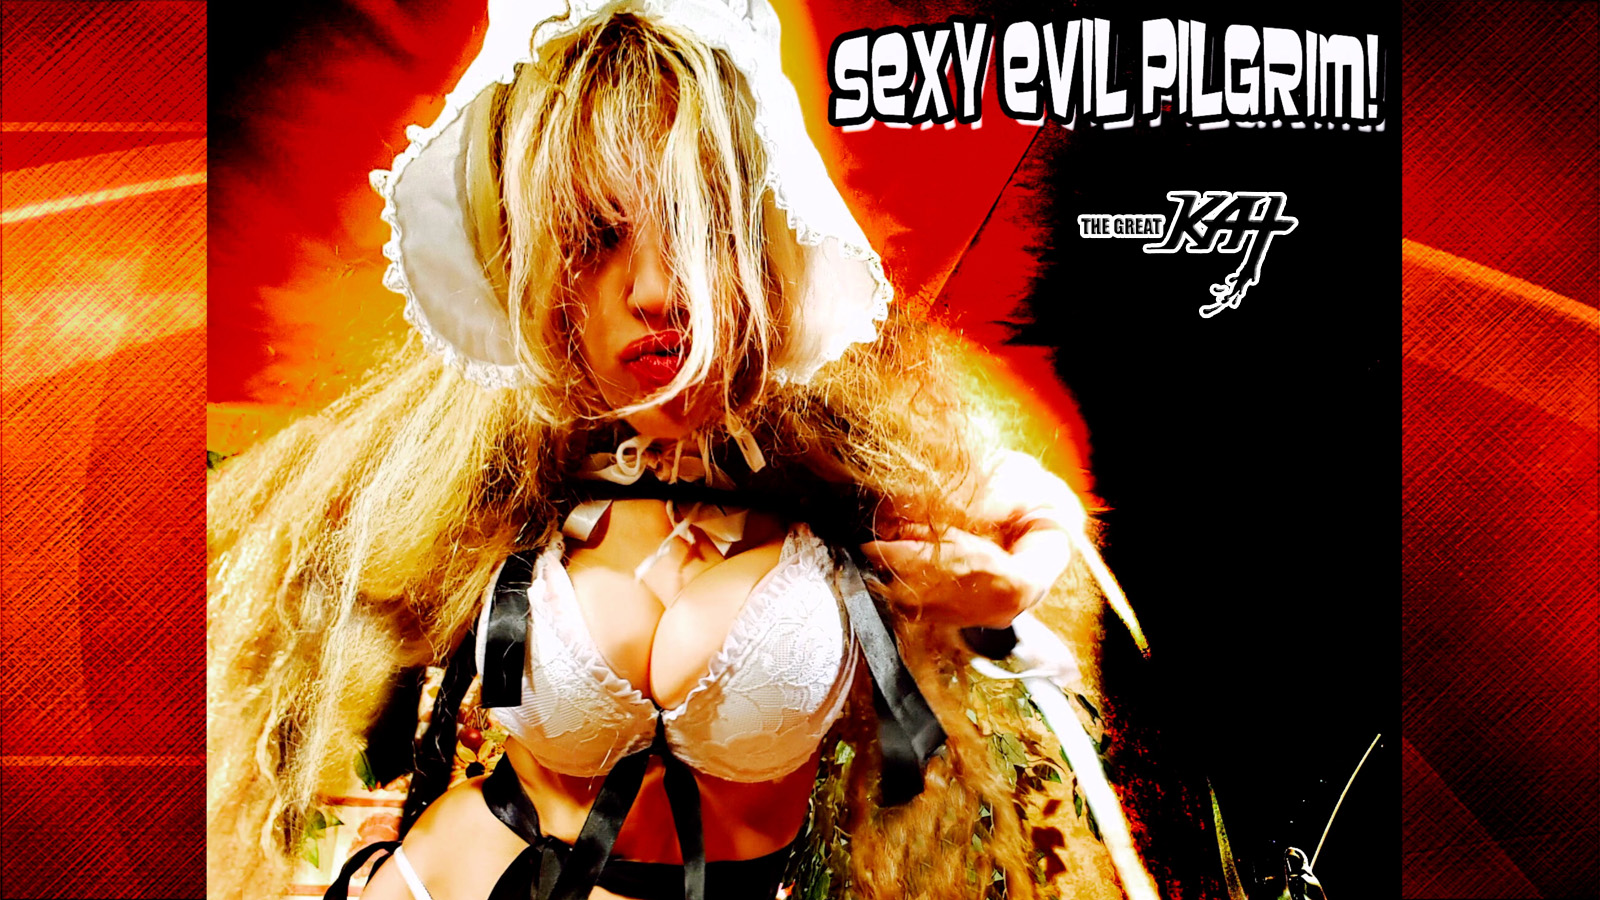 "THE GREAT KAT'S ""TOP 20 HOT SHRED HOLIDAYS!"" ""SEXY EVIL PILGRIM!"" From The Great Kat's NEW DVD!!!!"